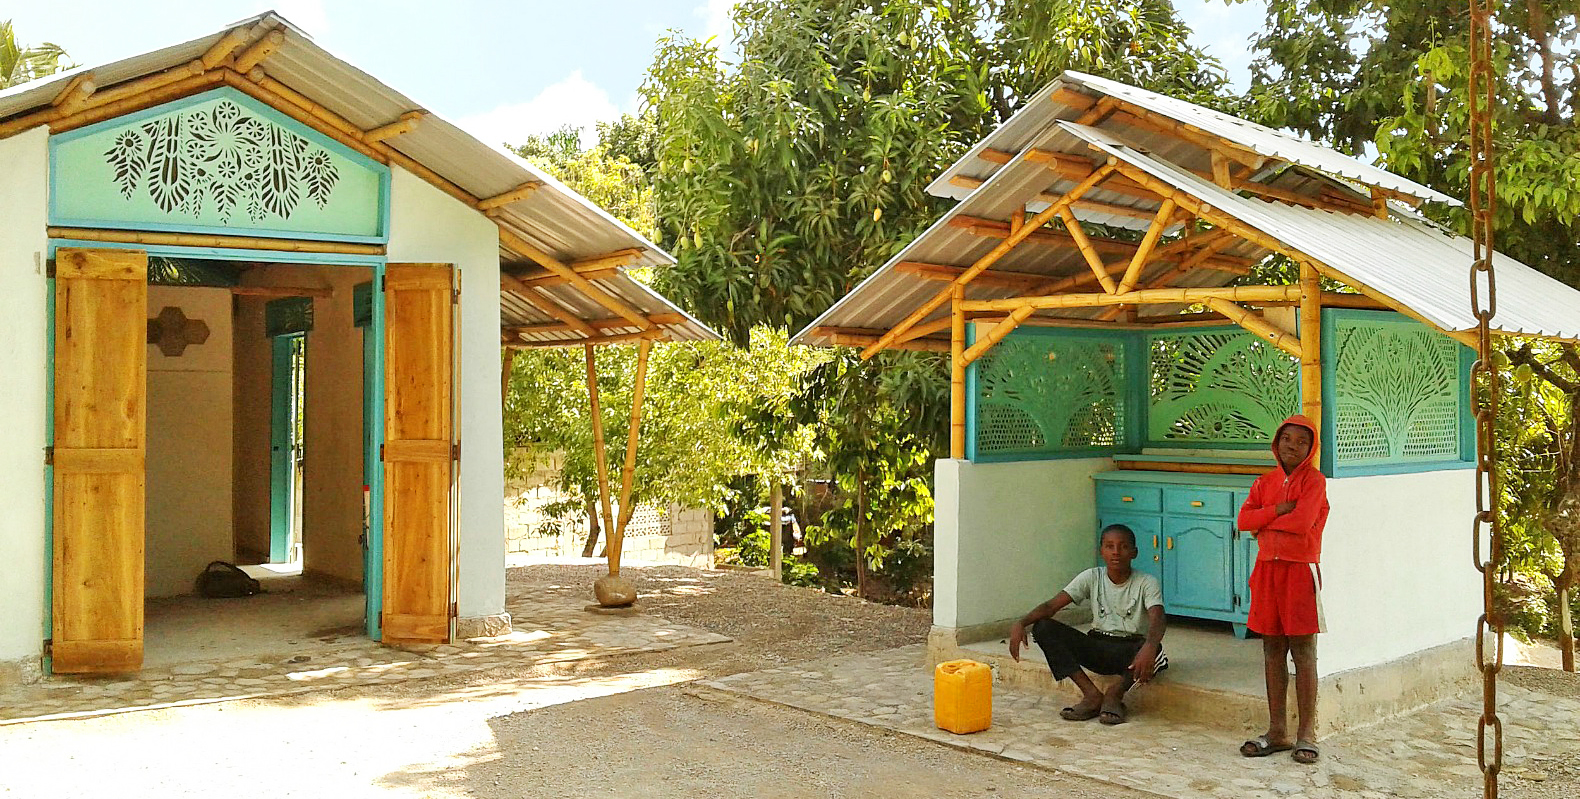 Sustainable Konbit shelter replaces home destroyed by Haiti earthquake